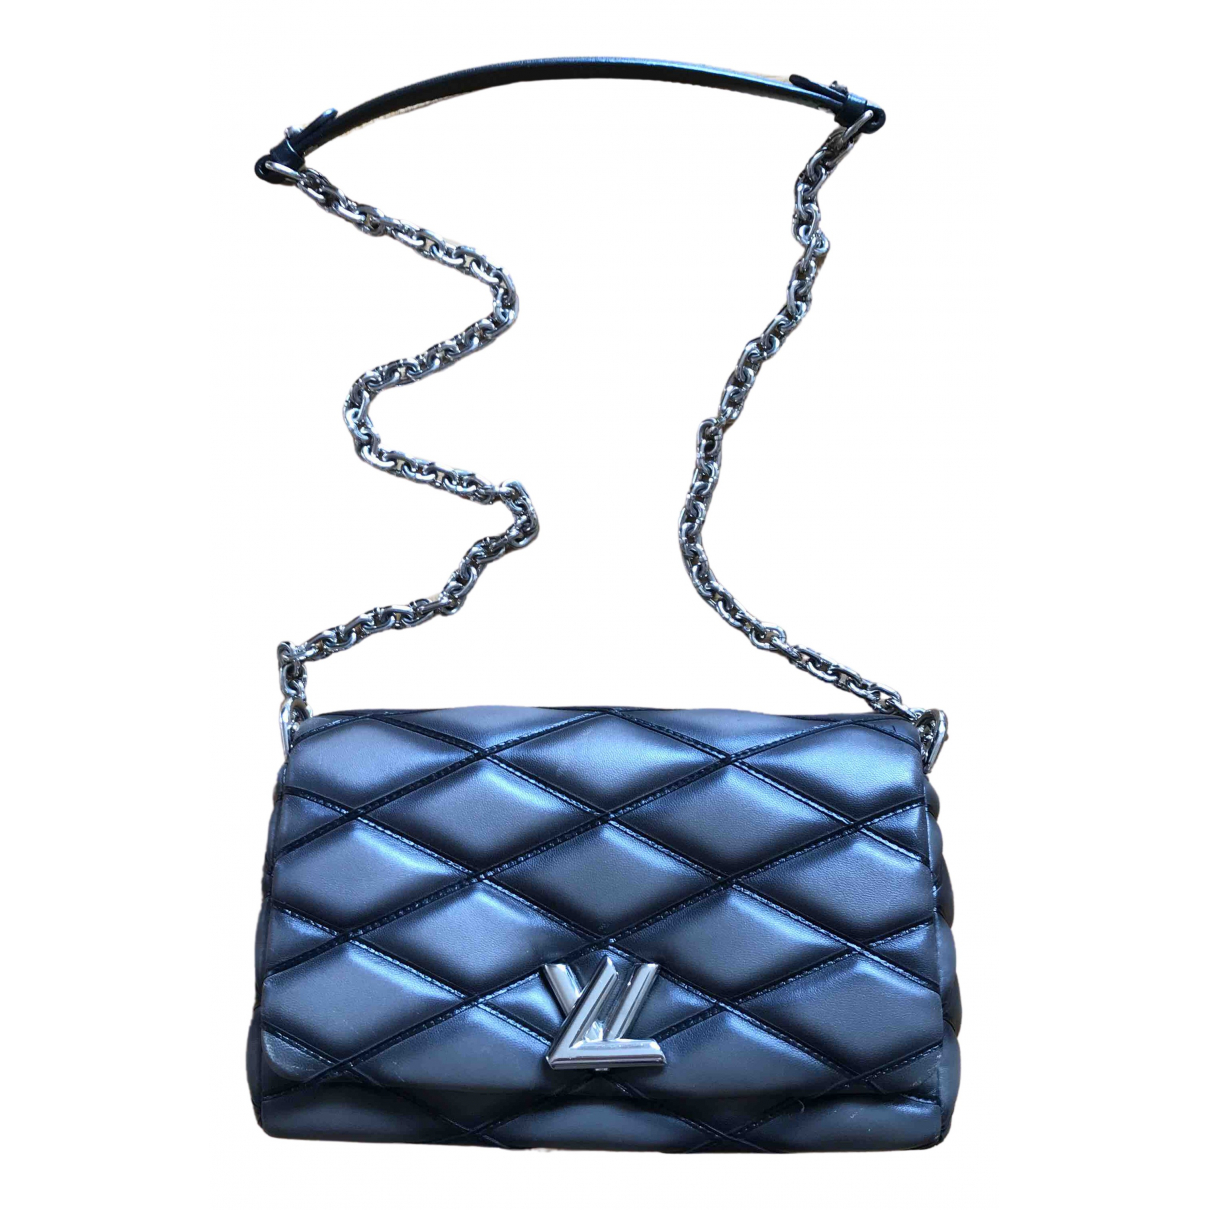 Louis Vuitton GO 14 Anthracite Leather handbag for Women \N